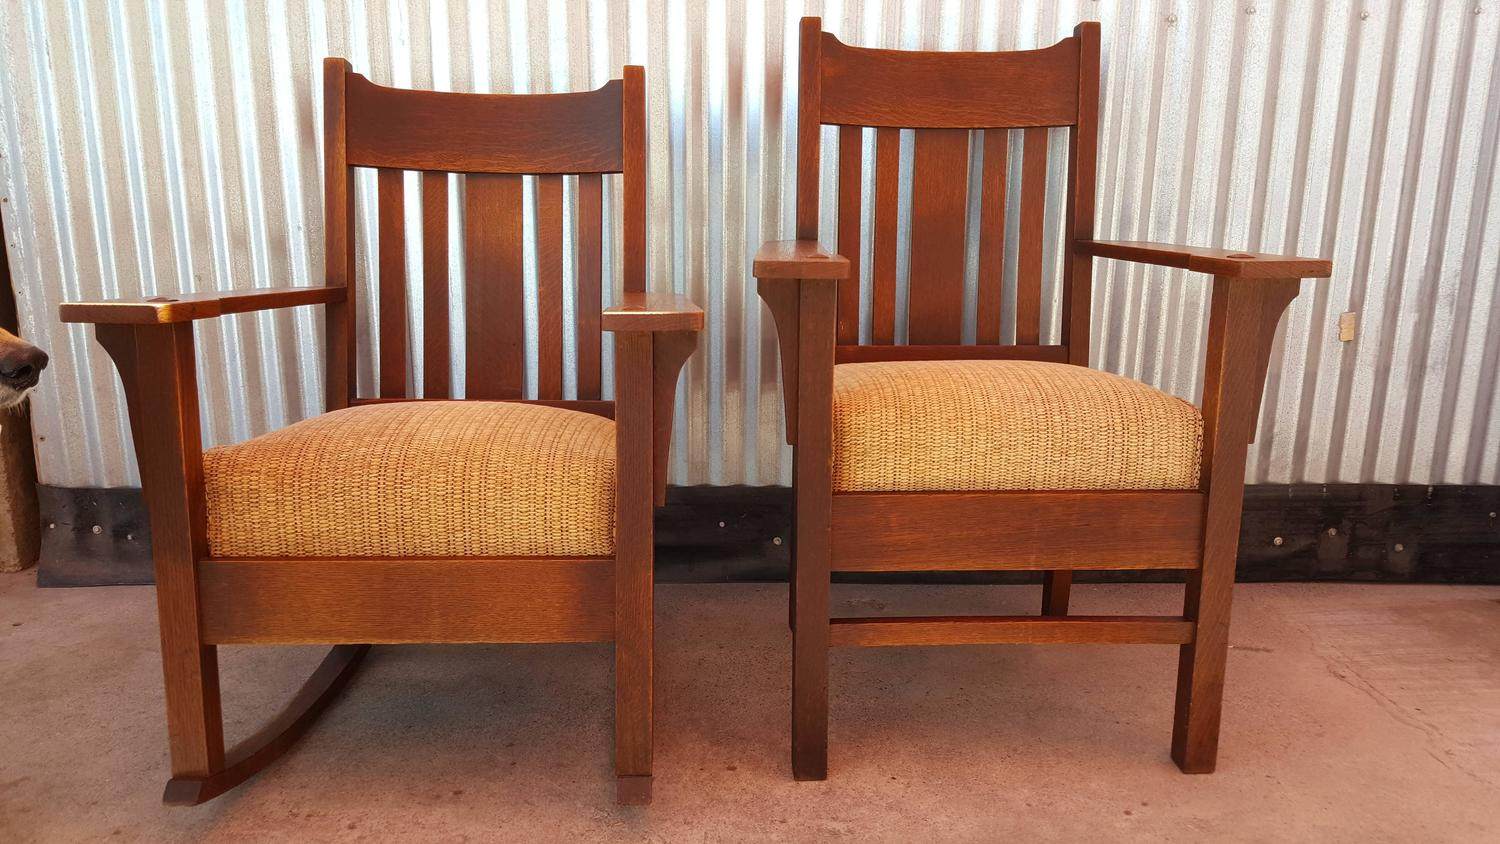 mission chairs for sale used party tables and arts crafts rocker armchair by harden